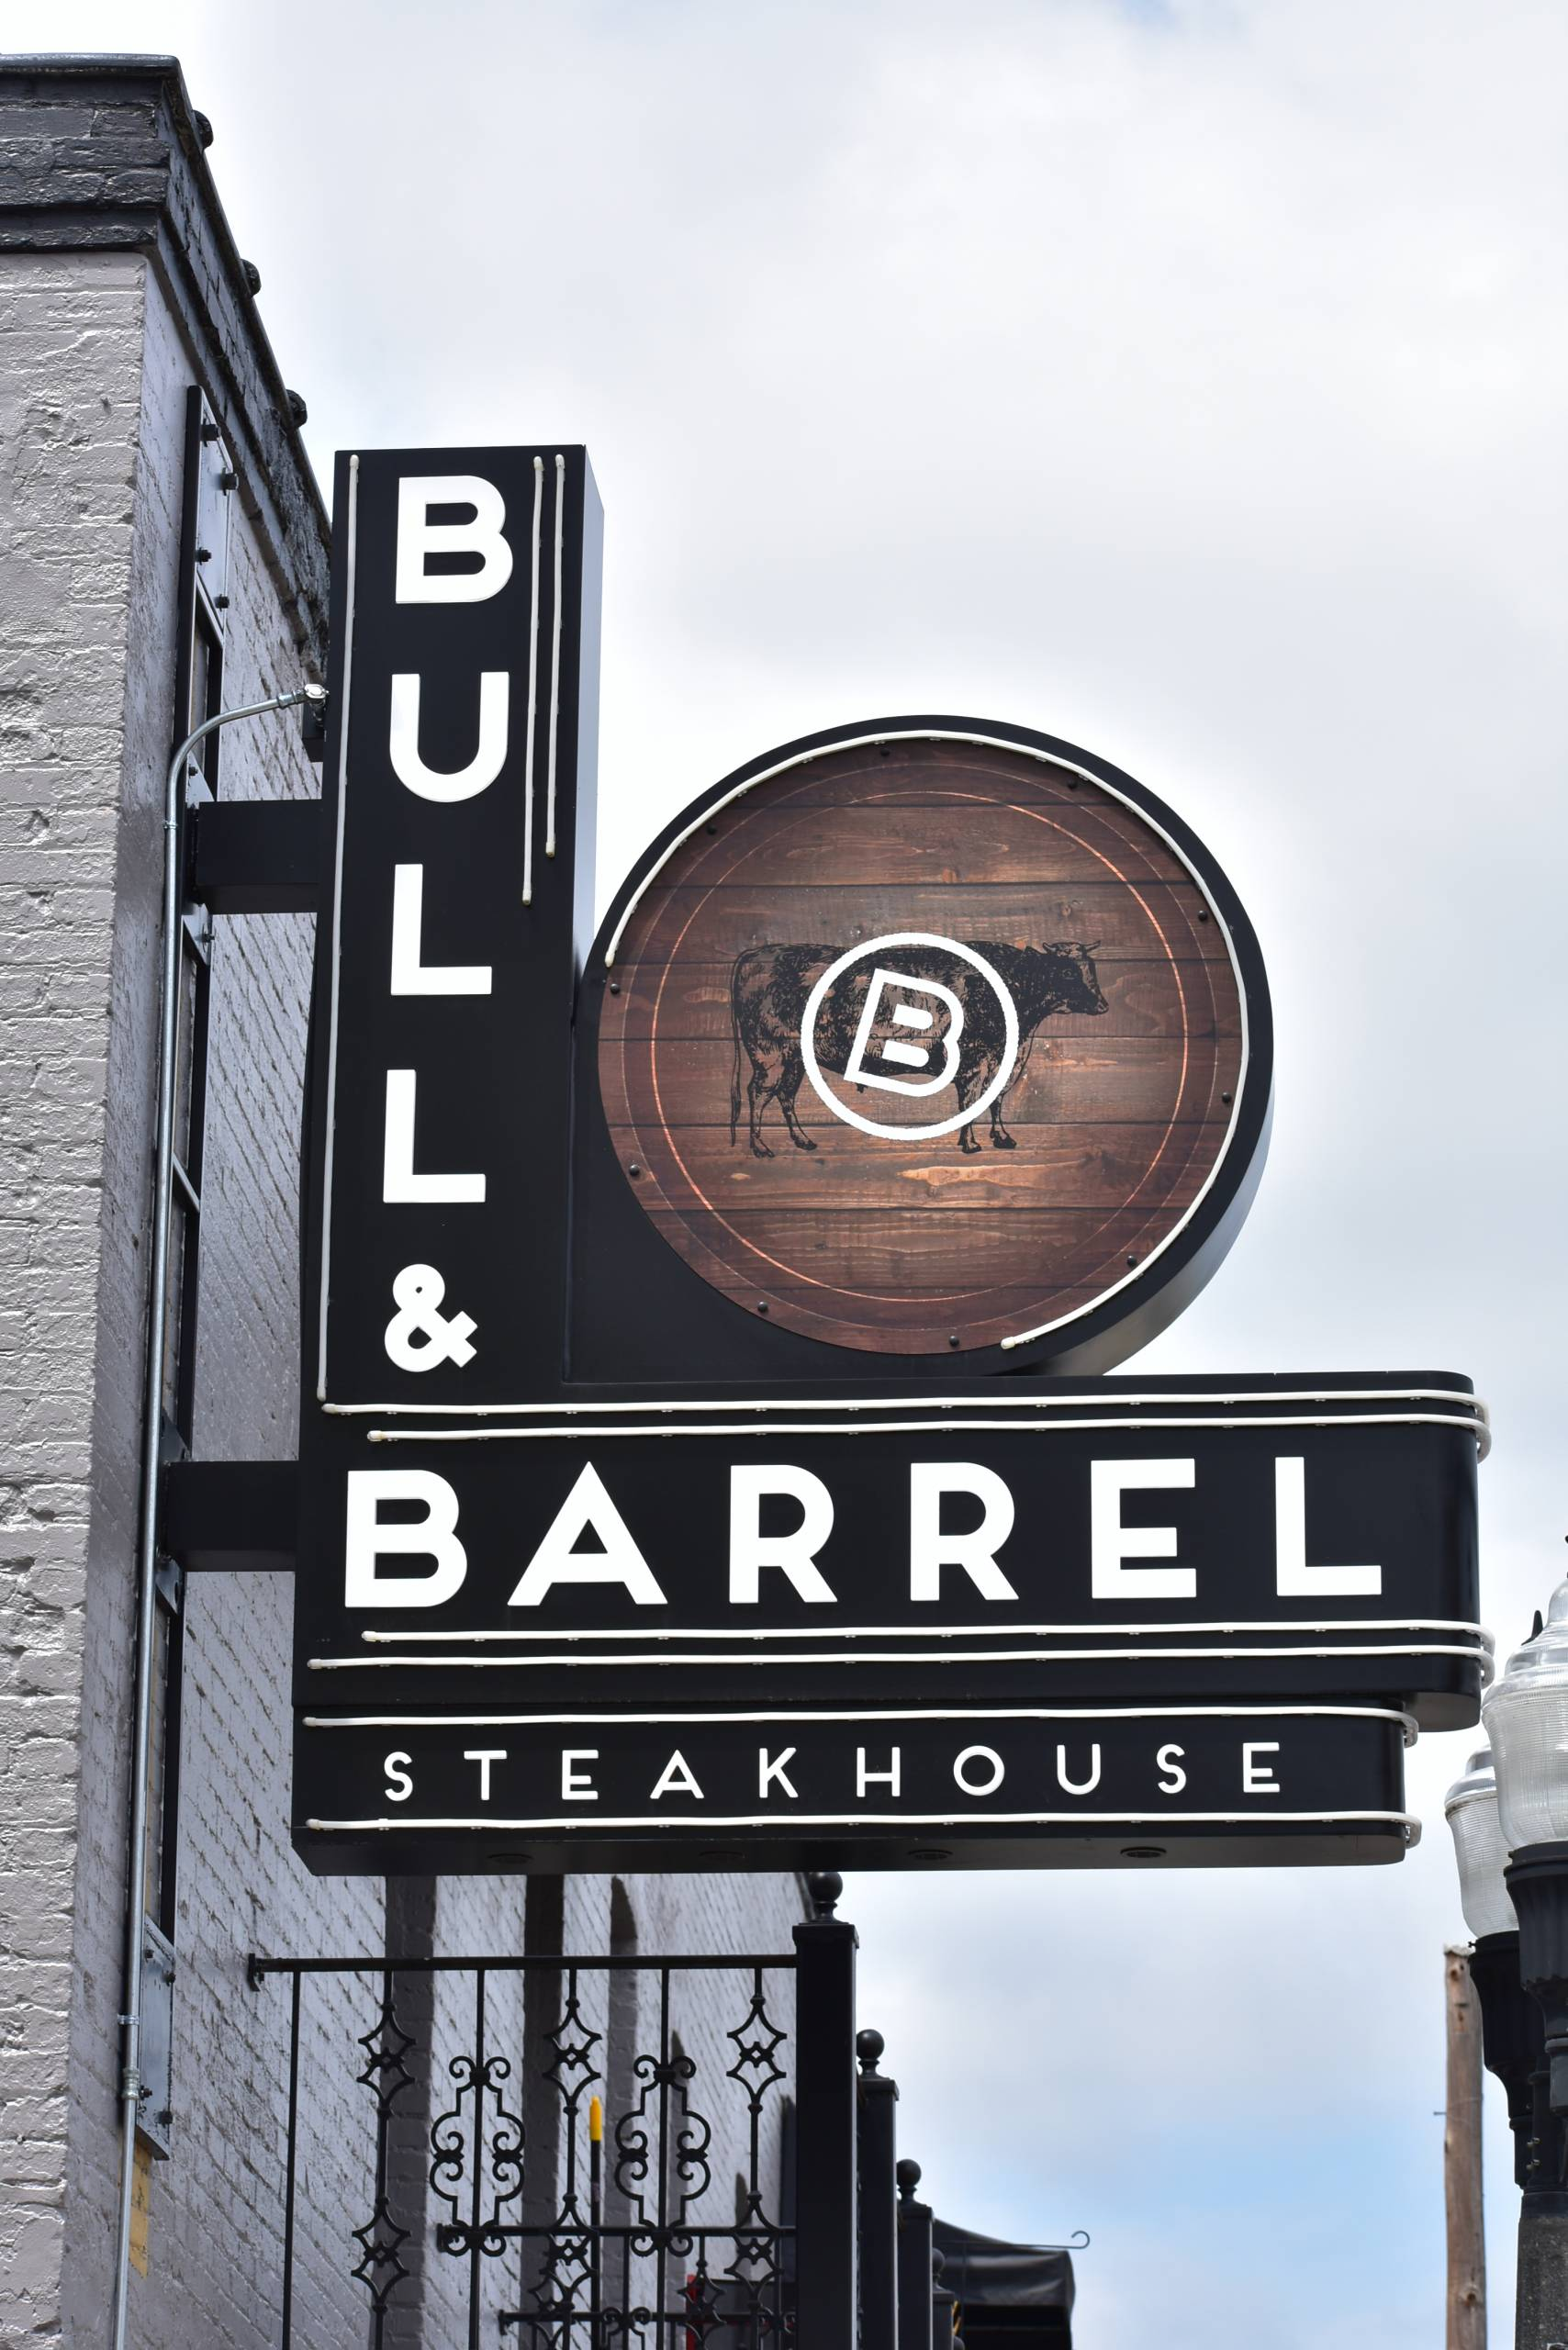 Spotlight: Bull and Barrel Steakhouse